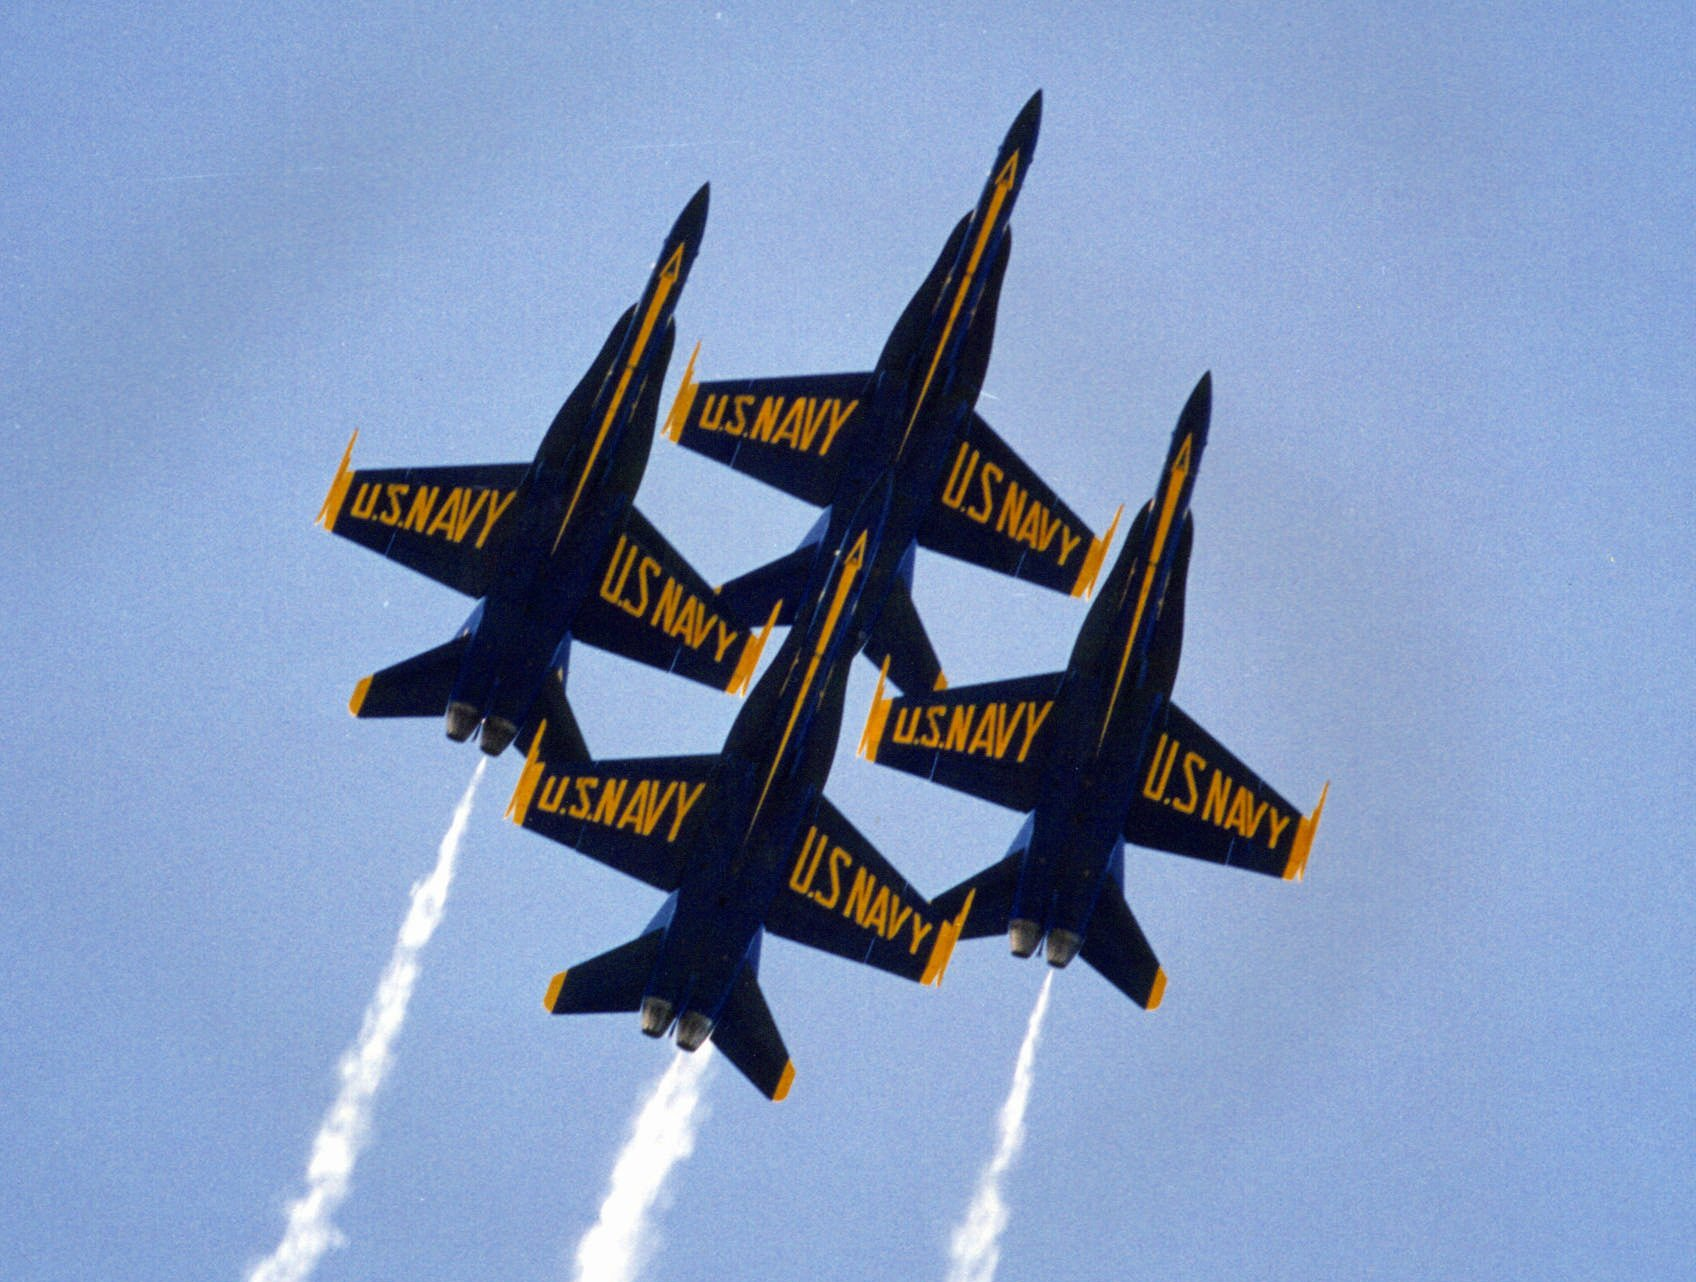 This is an undated photo of the U.S. Navy's Blue Angels precision flying team.